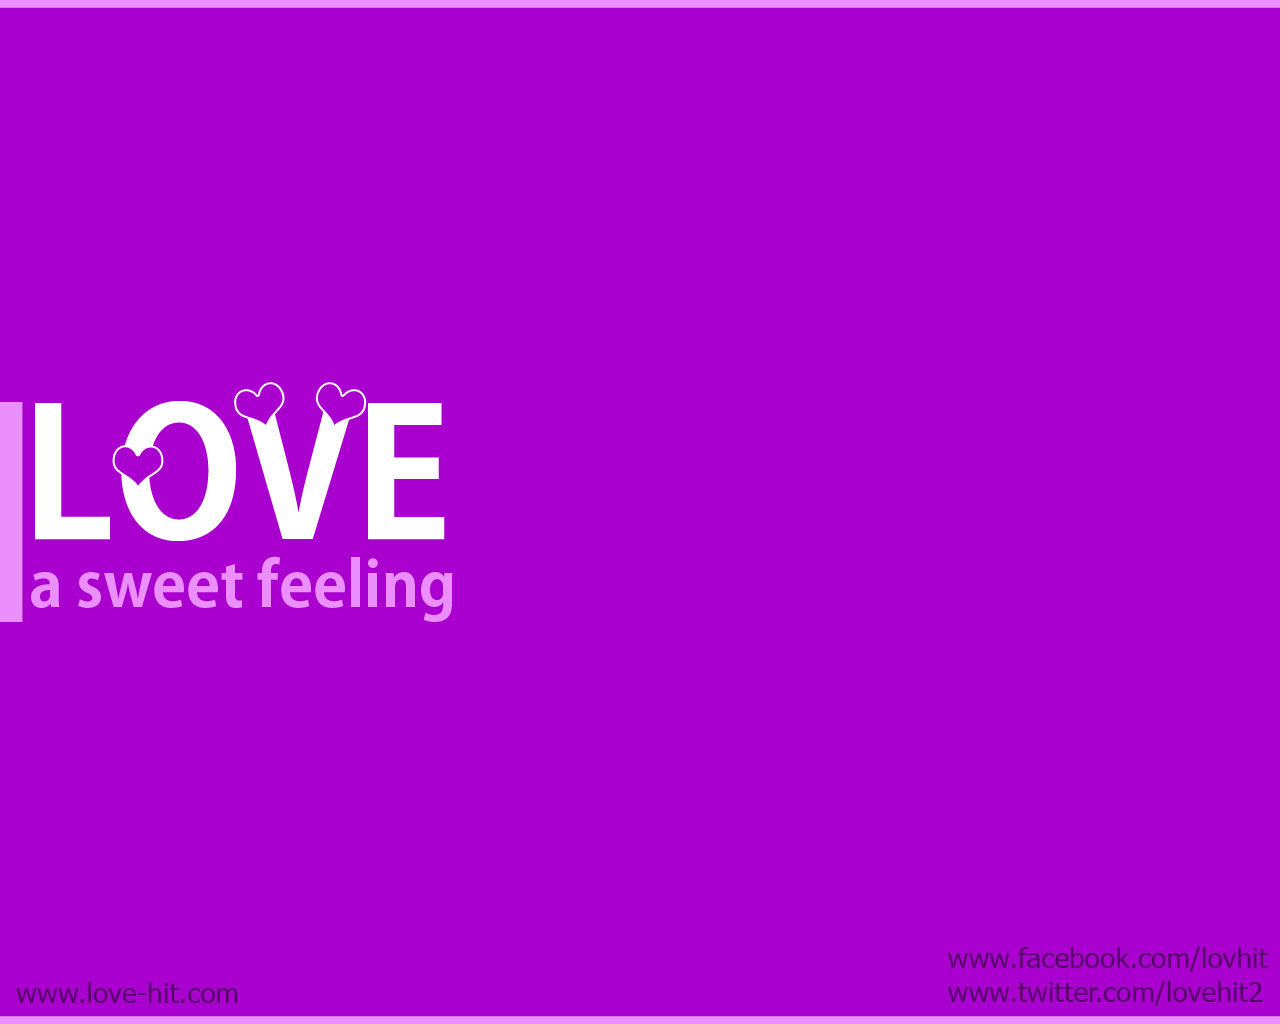 Love: a sweet feeling